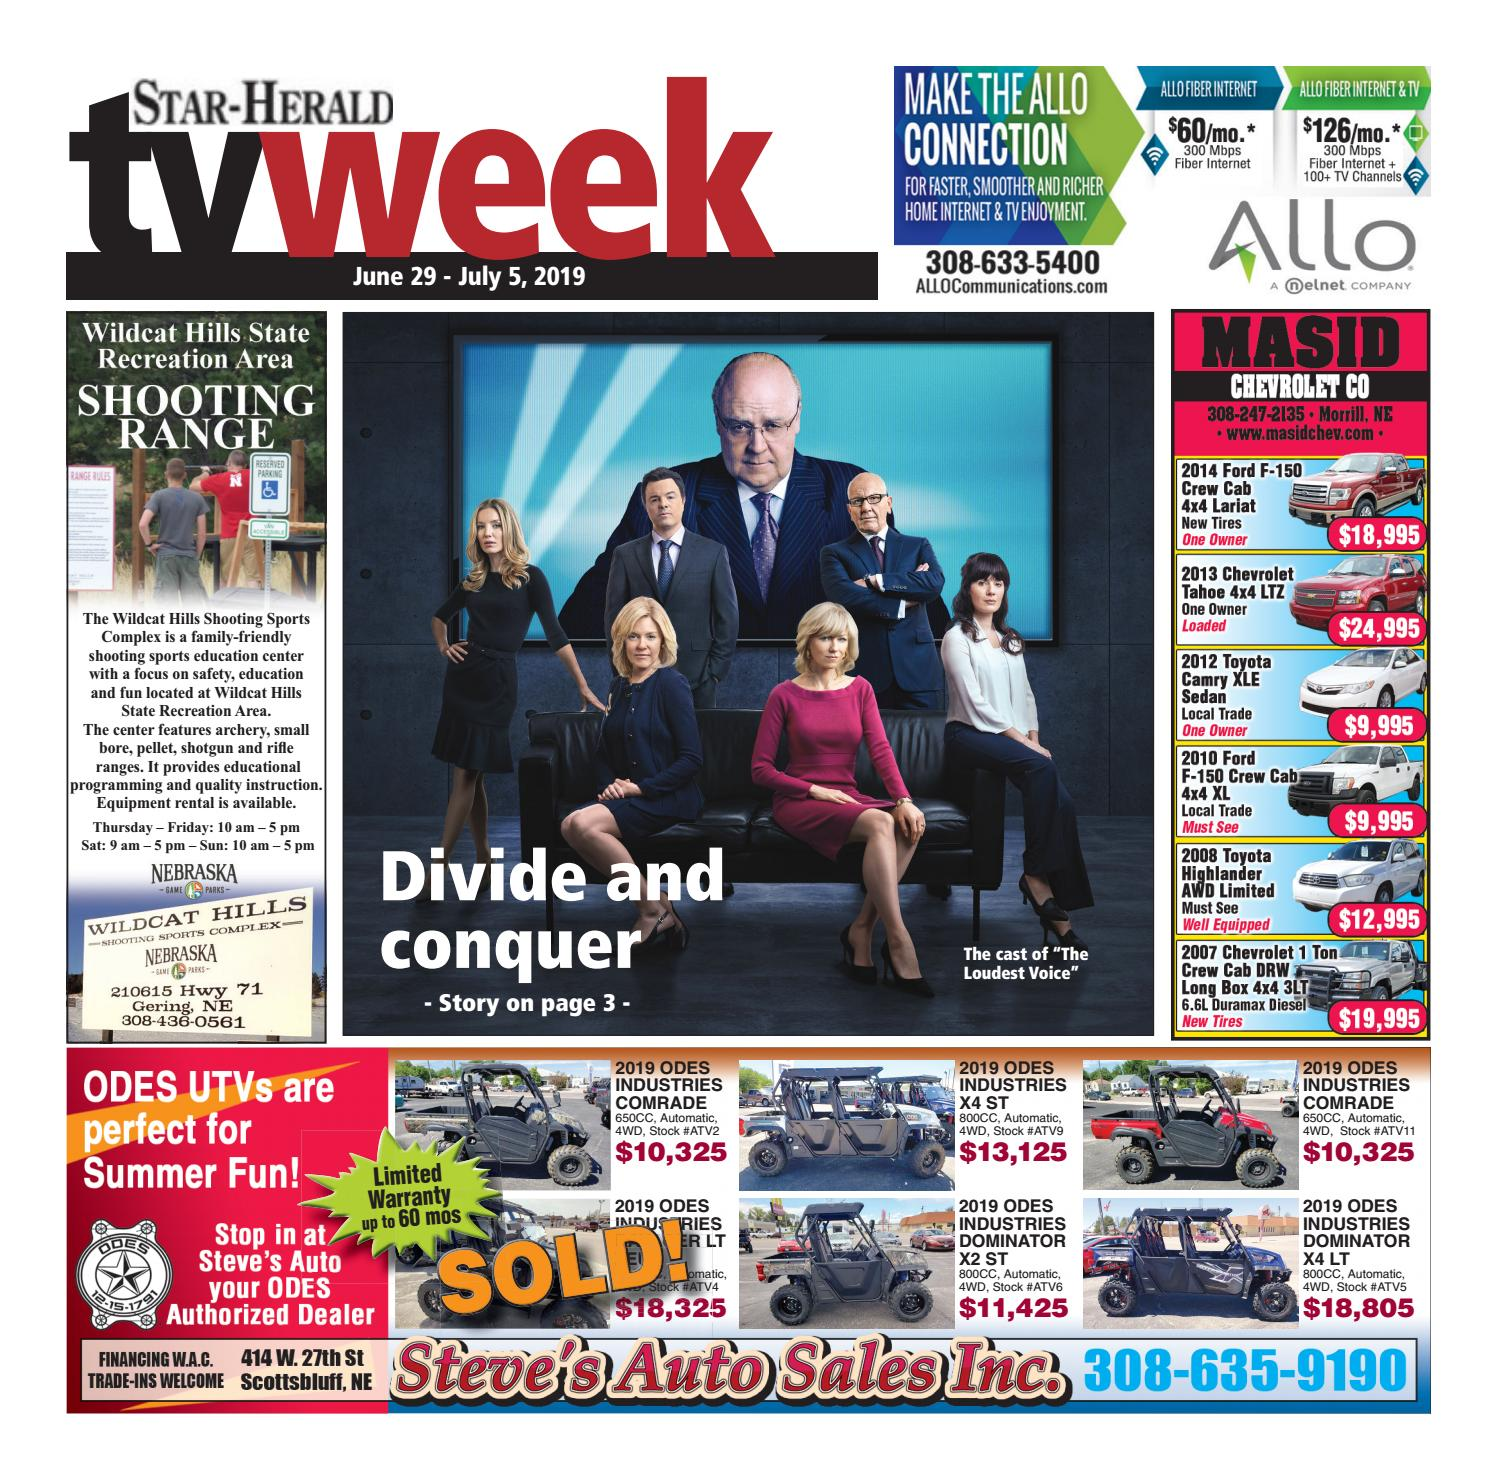 TV Week June 29, 2019 by Star-Herald - issuu